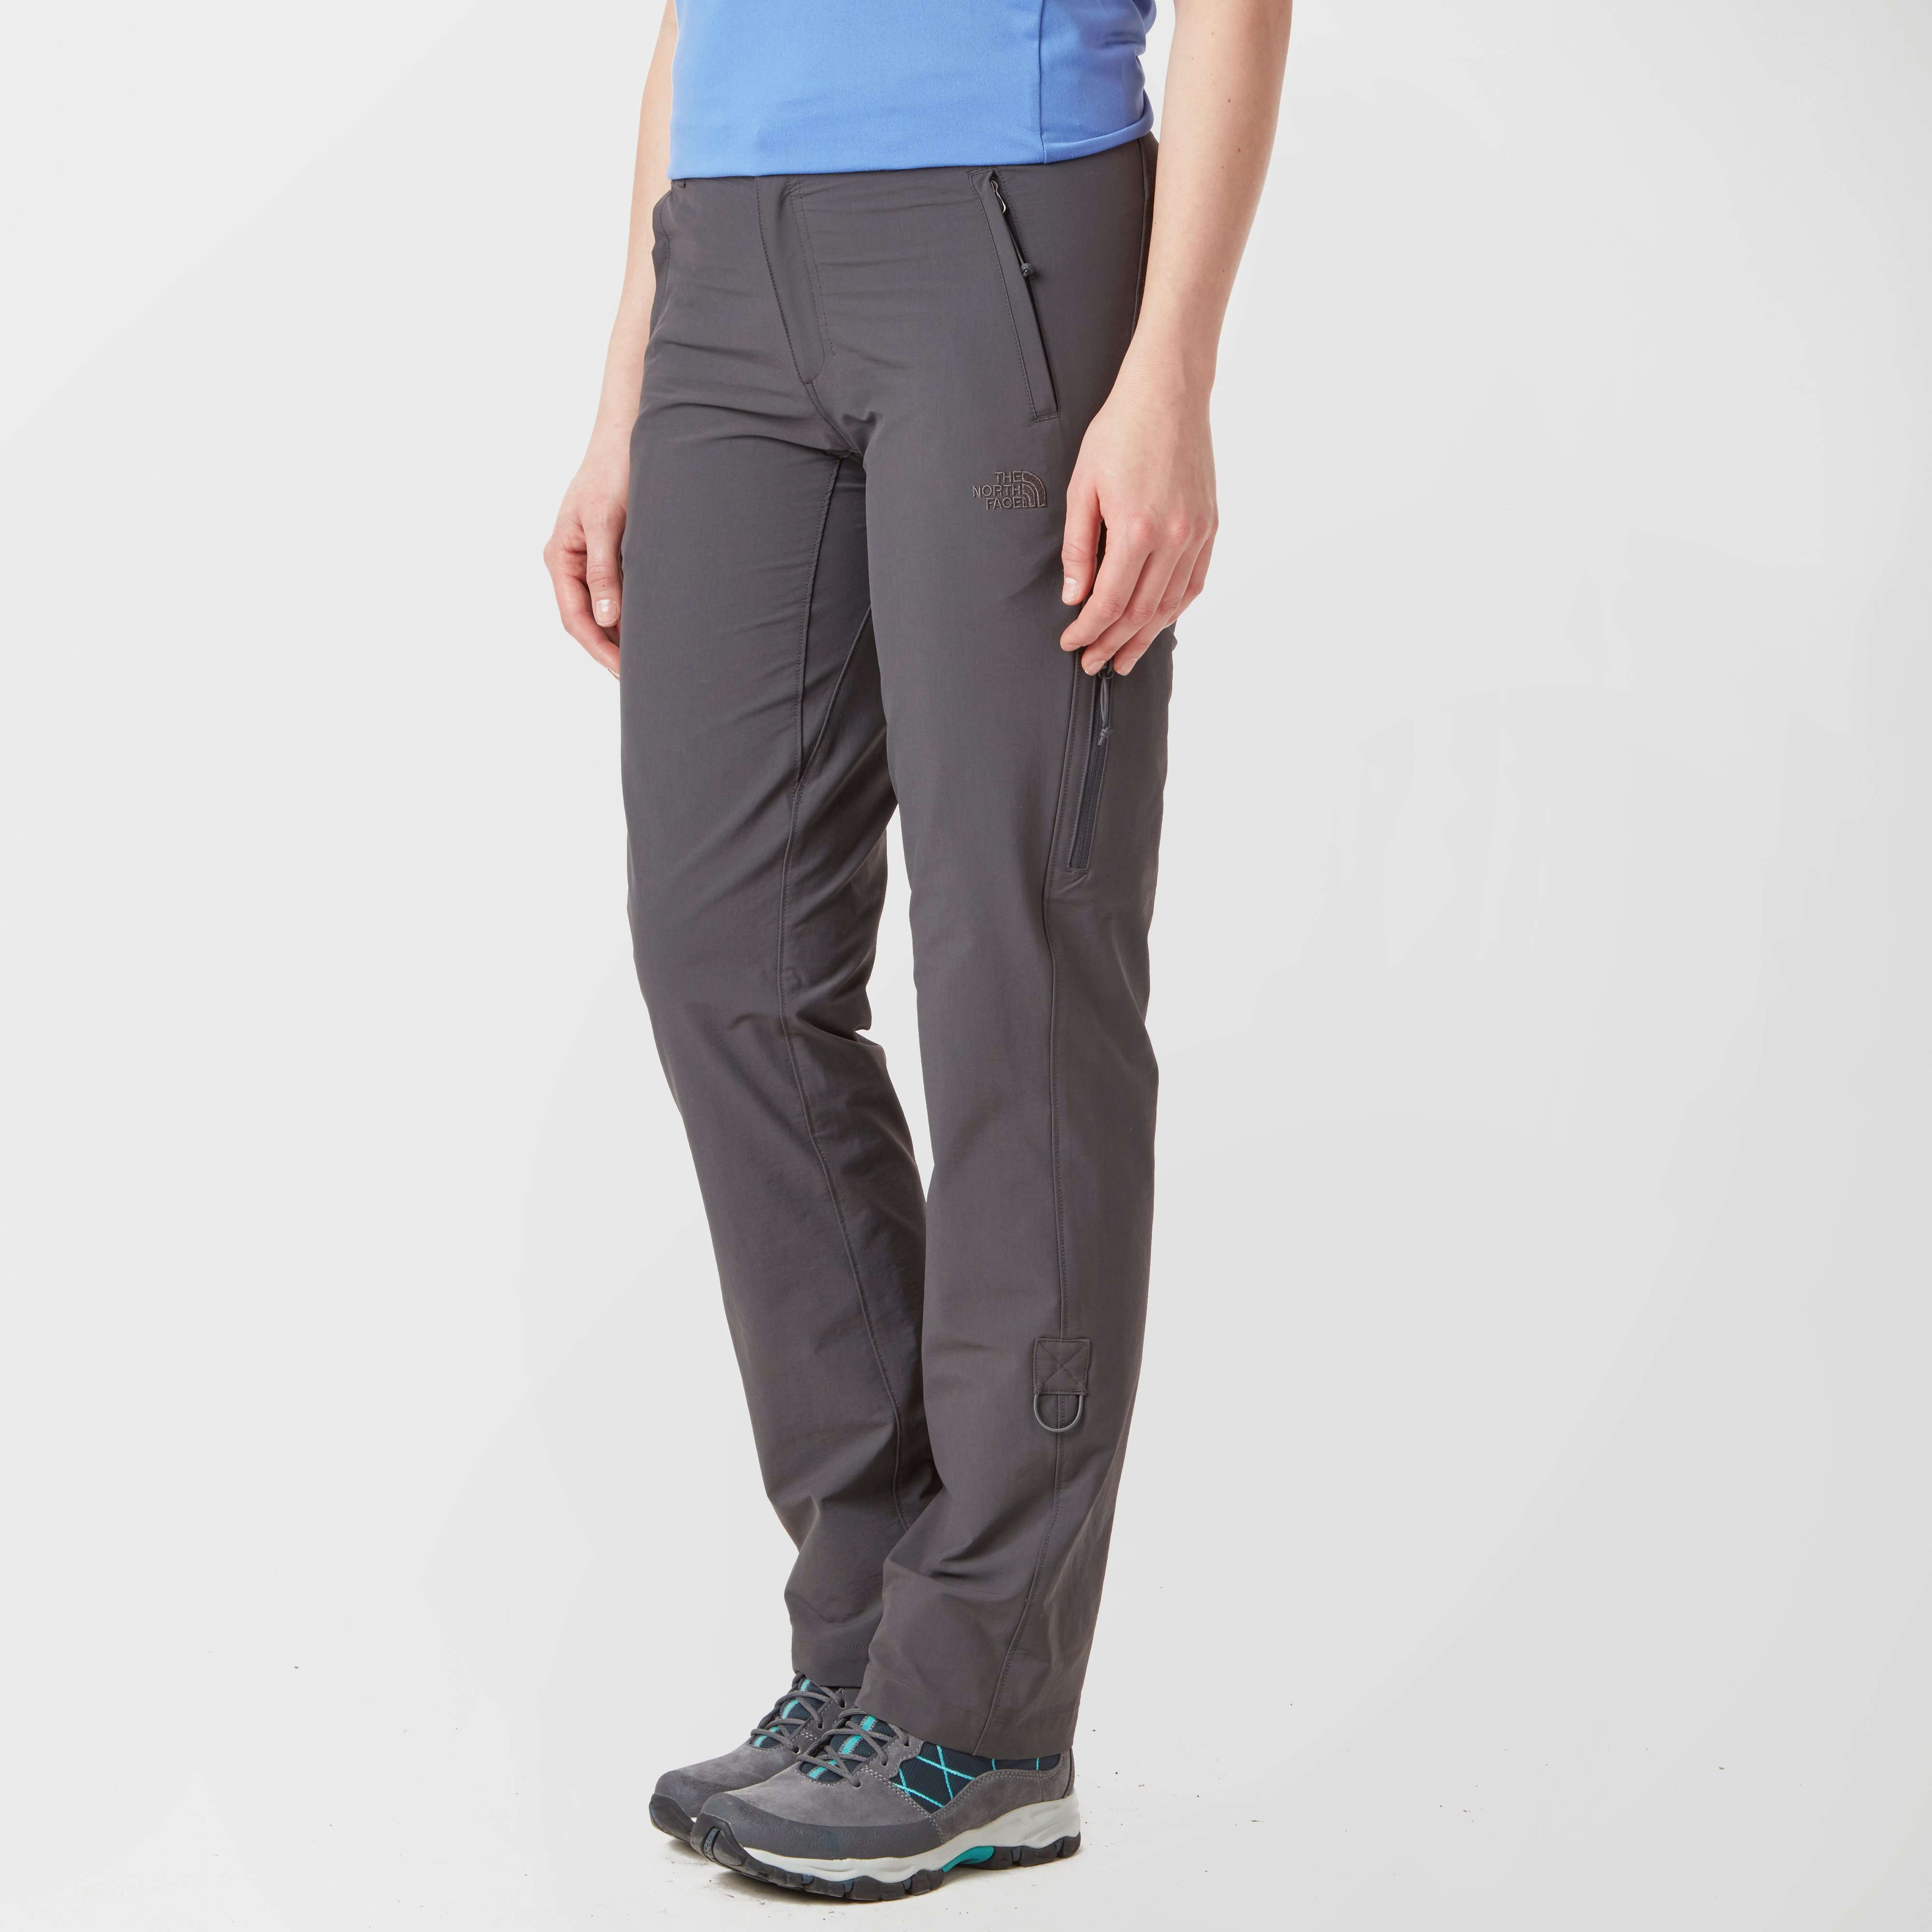 THE NORTH FACE Women's Exploration Pant